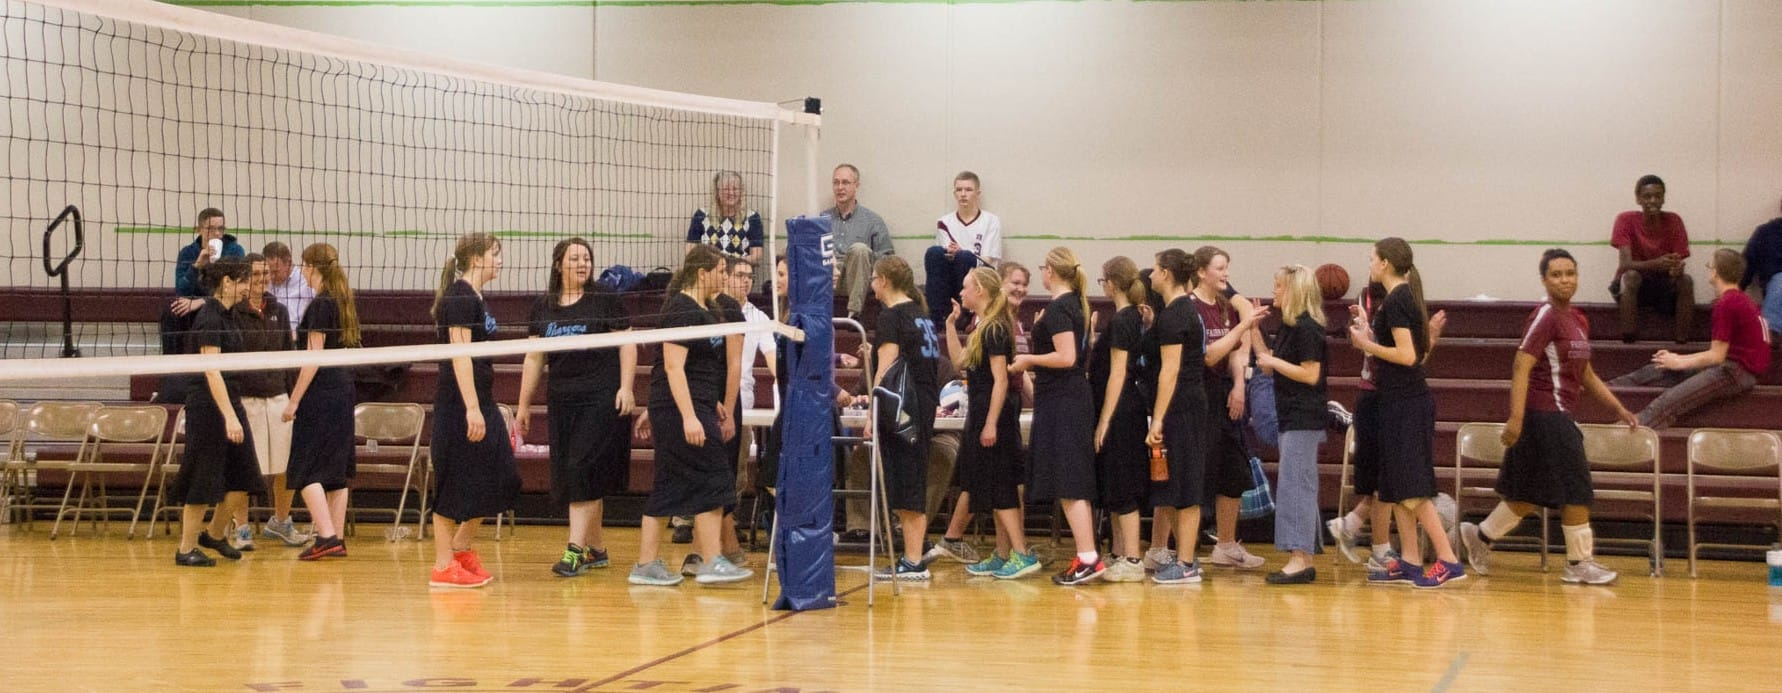 Fairhaven Baptist Academy Volleyball Basketball Tournament 2016 (31 of 40)